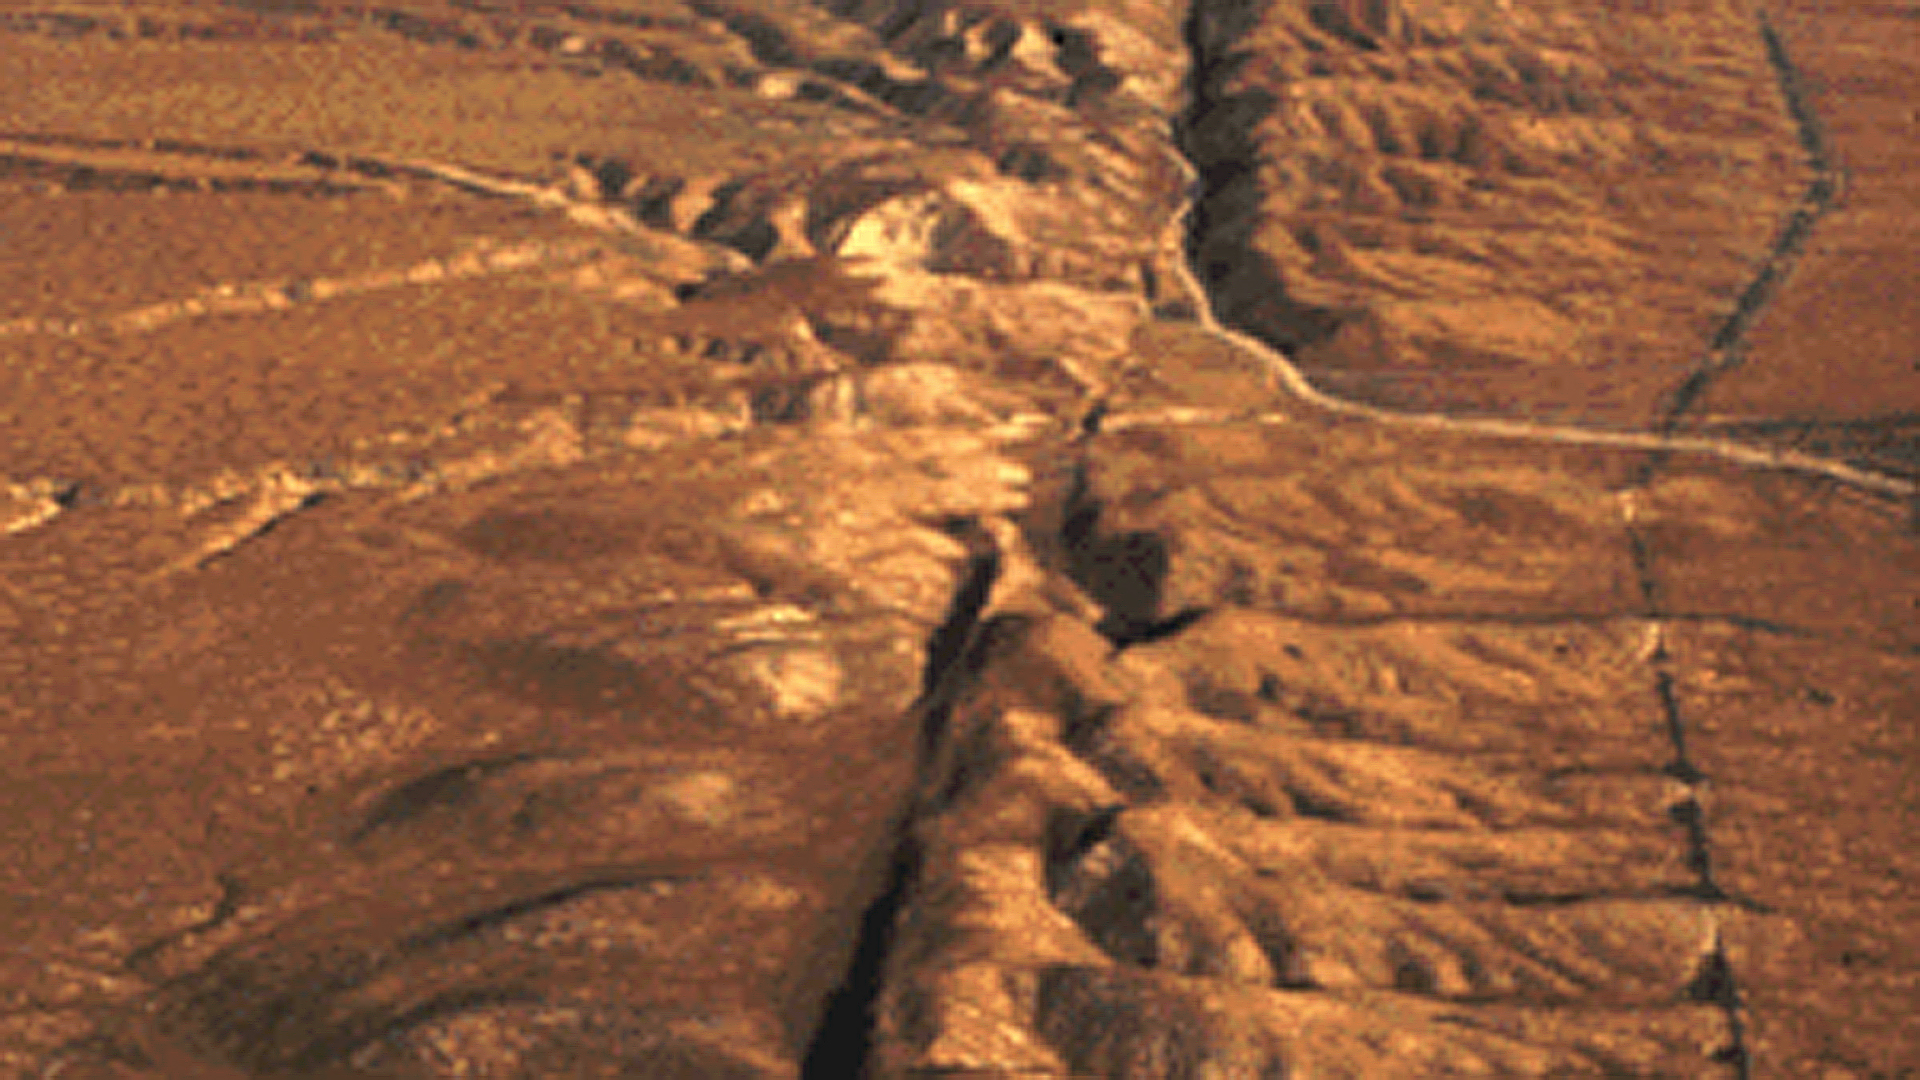 An aerial view of the San Andreas fault in the Carrizo Plain, Central California. (Credit: USGS)